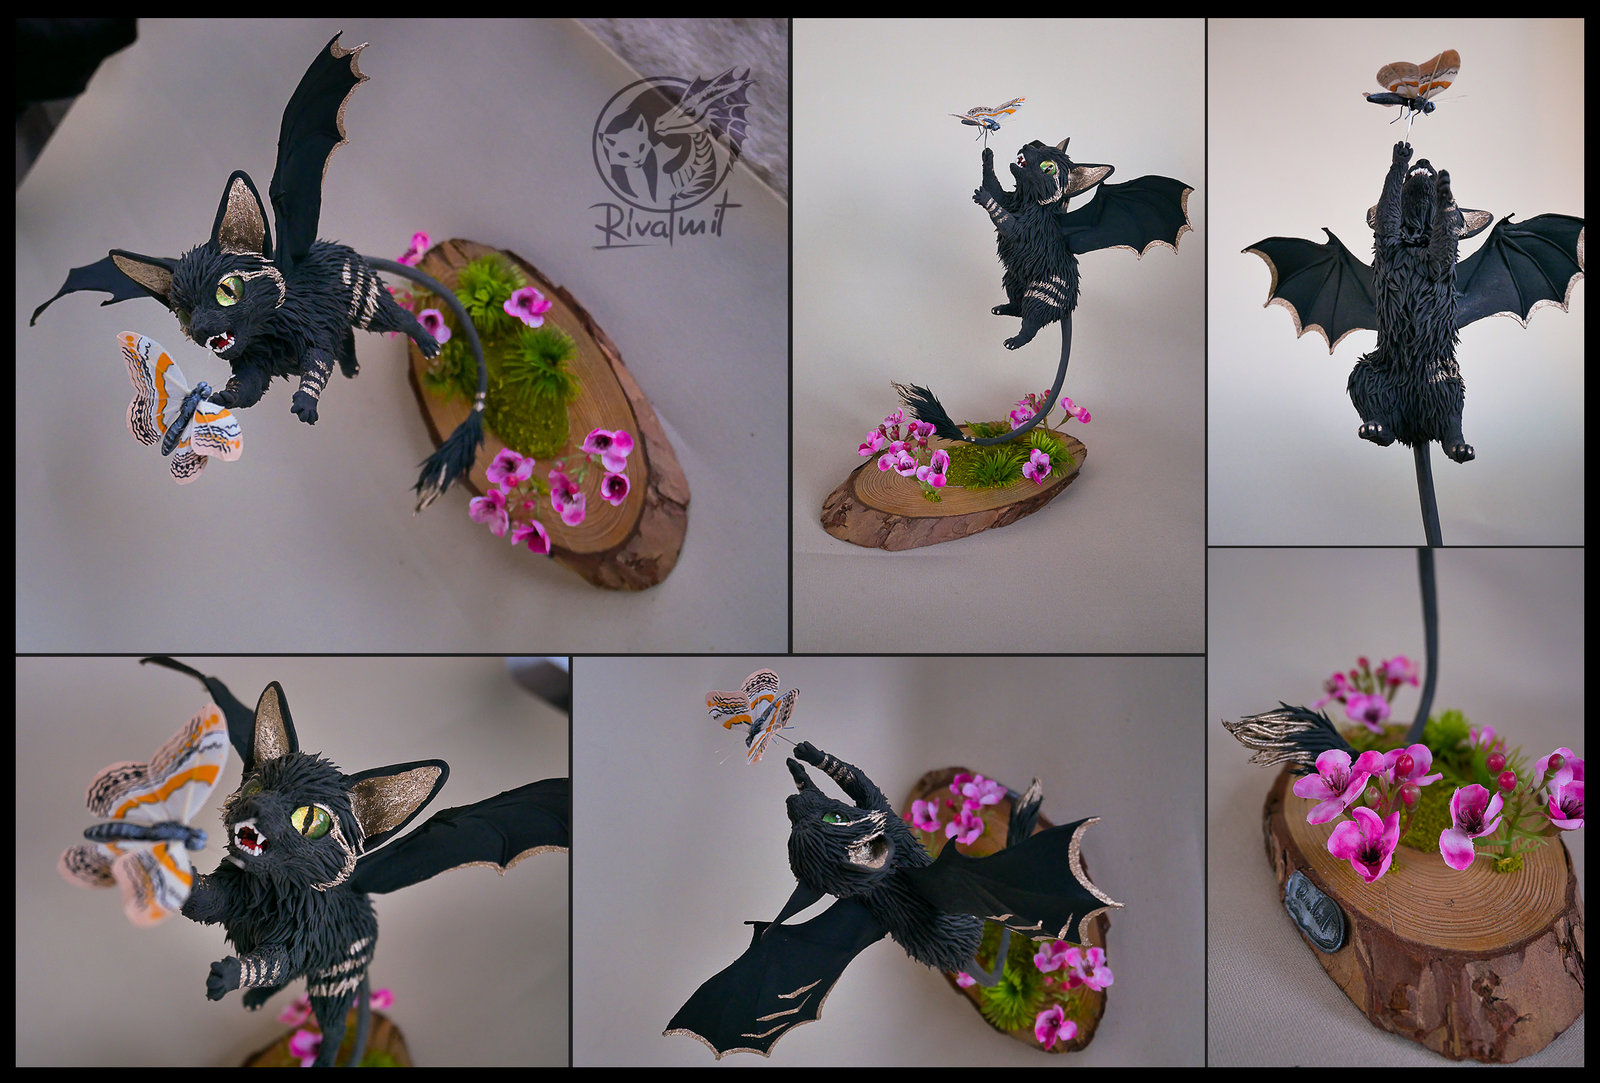 sculpture art cat felinae bat batkitty Bat kitty #13 Butterfly Jump